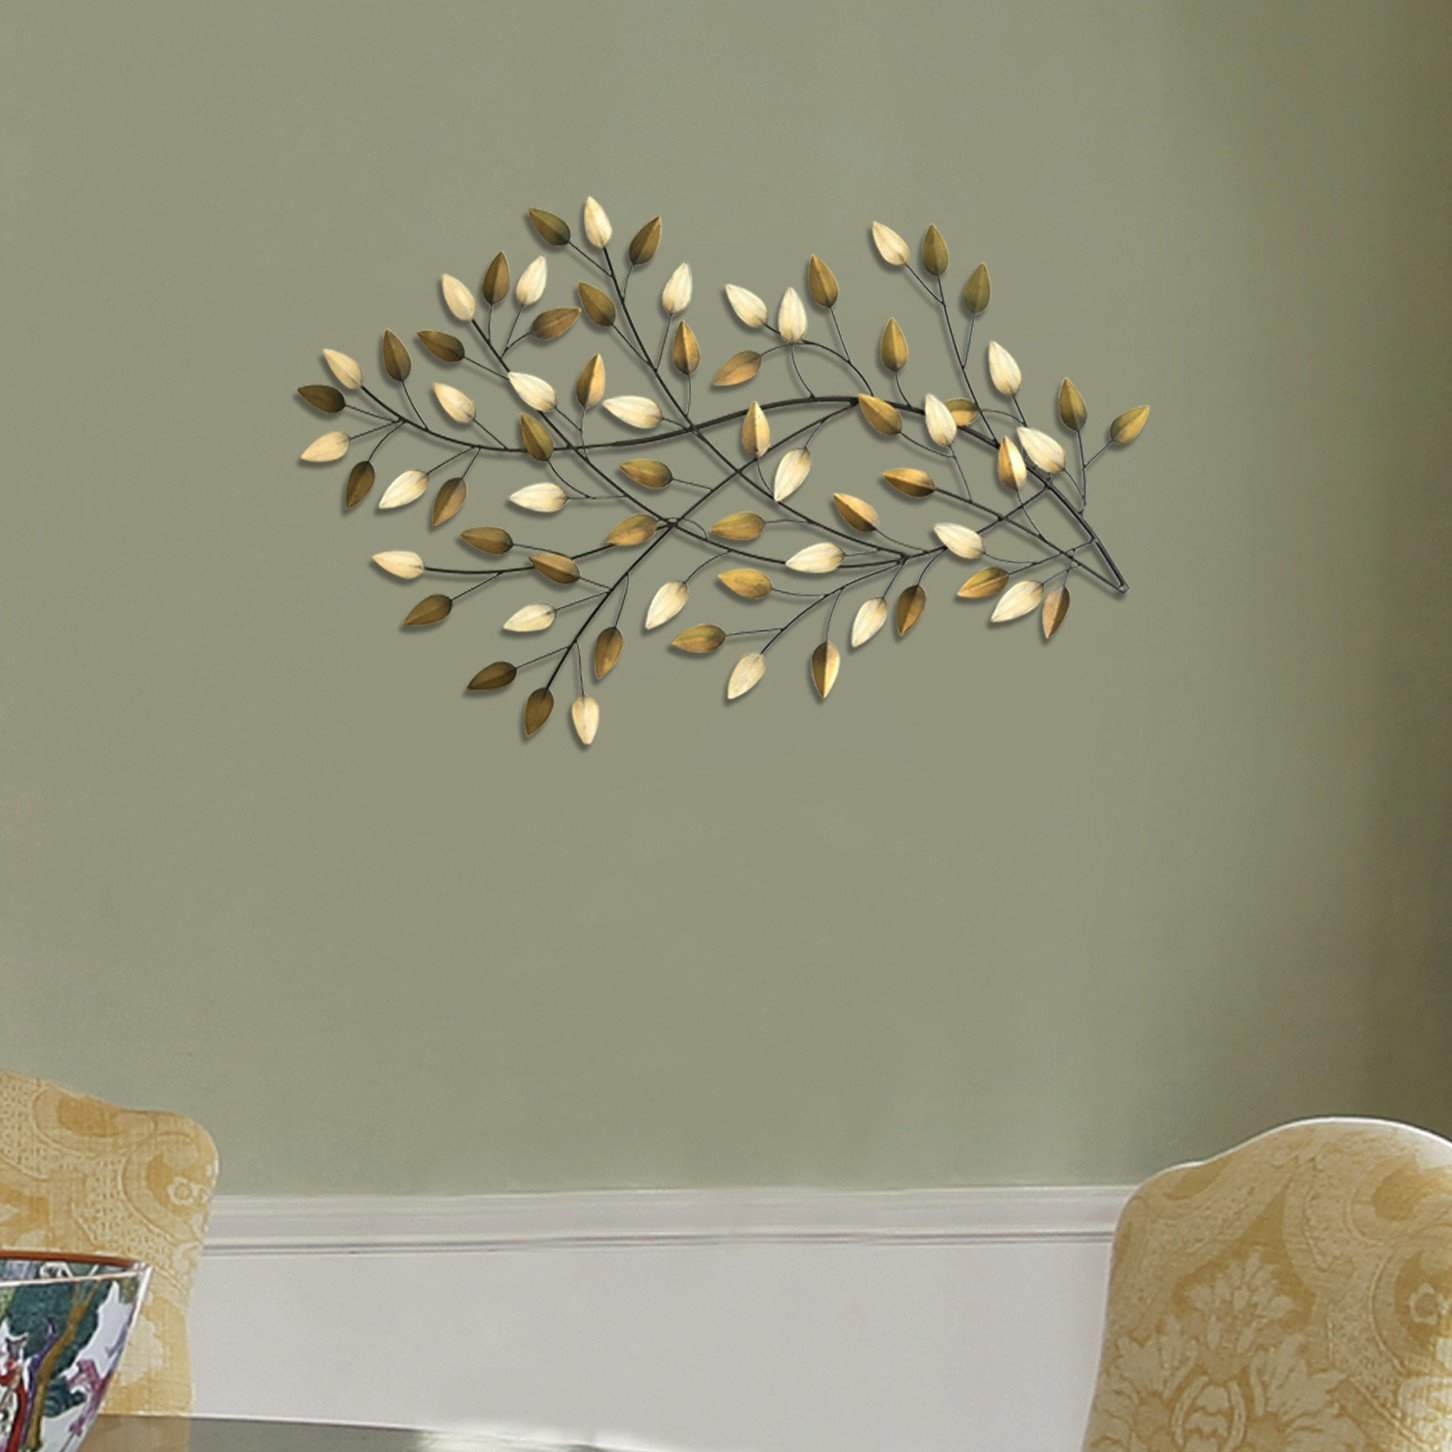 Gorgeous Blowing Leaves Wall Décor With Regard To Leaves Metal Sculpture Wall Decor By Winston Porter (View 13 of 30)